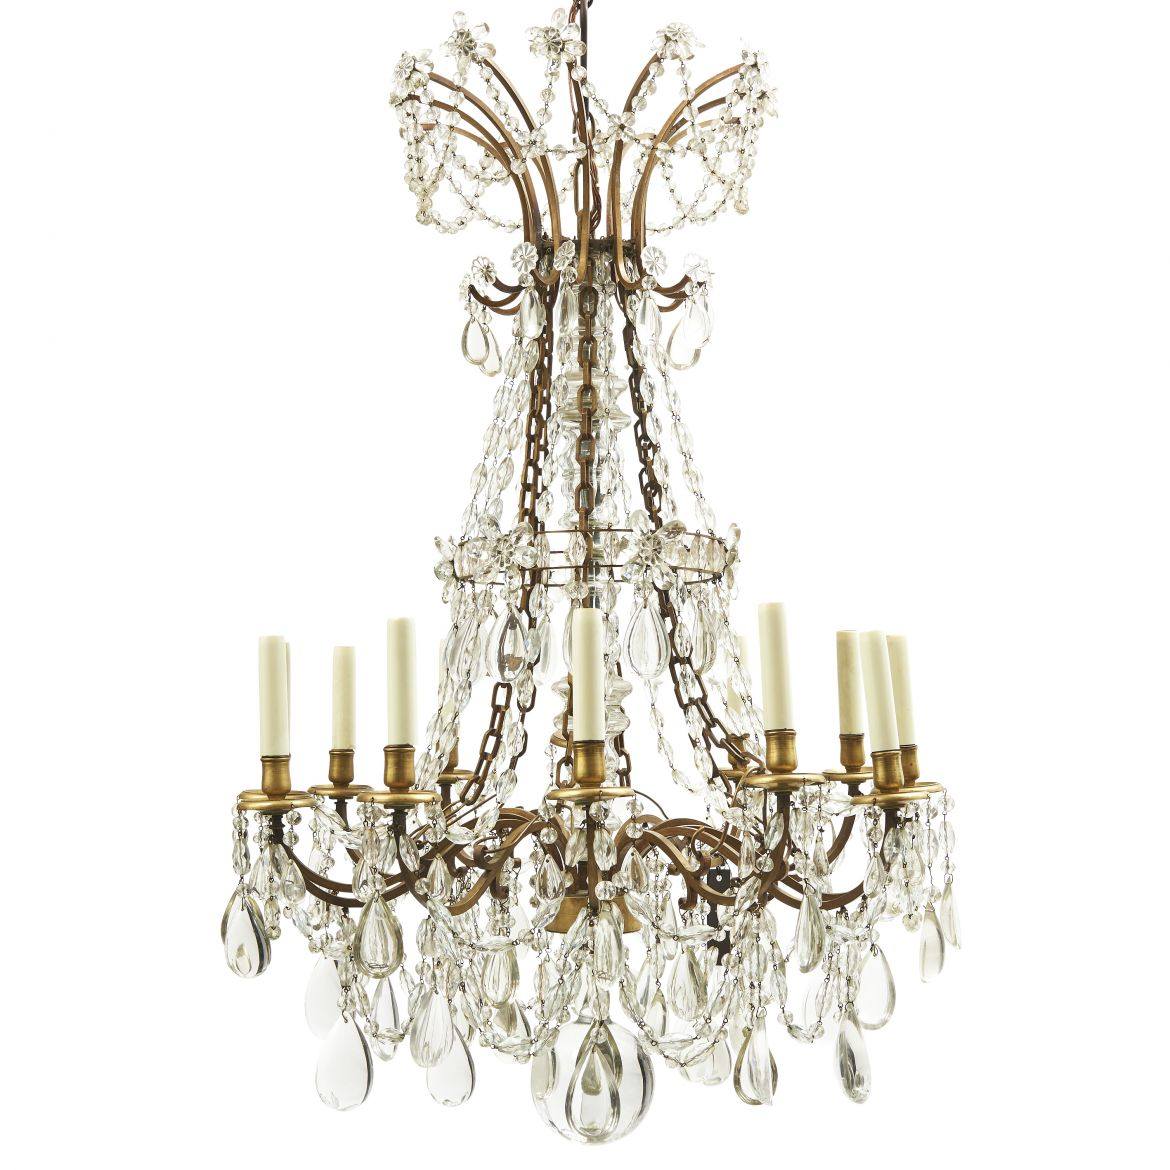 French Baccarat Style Crystal Chandelier